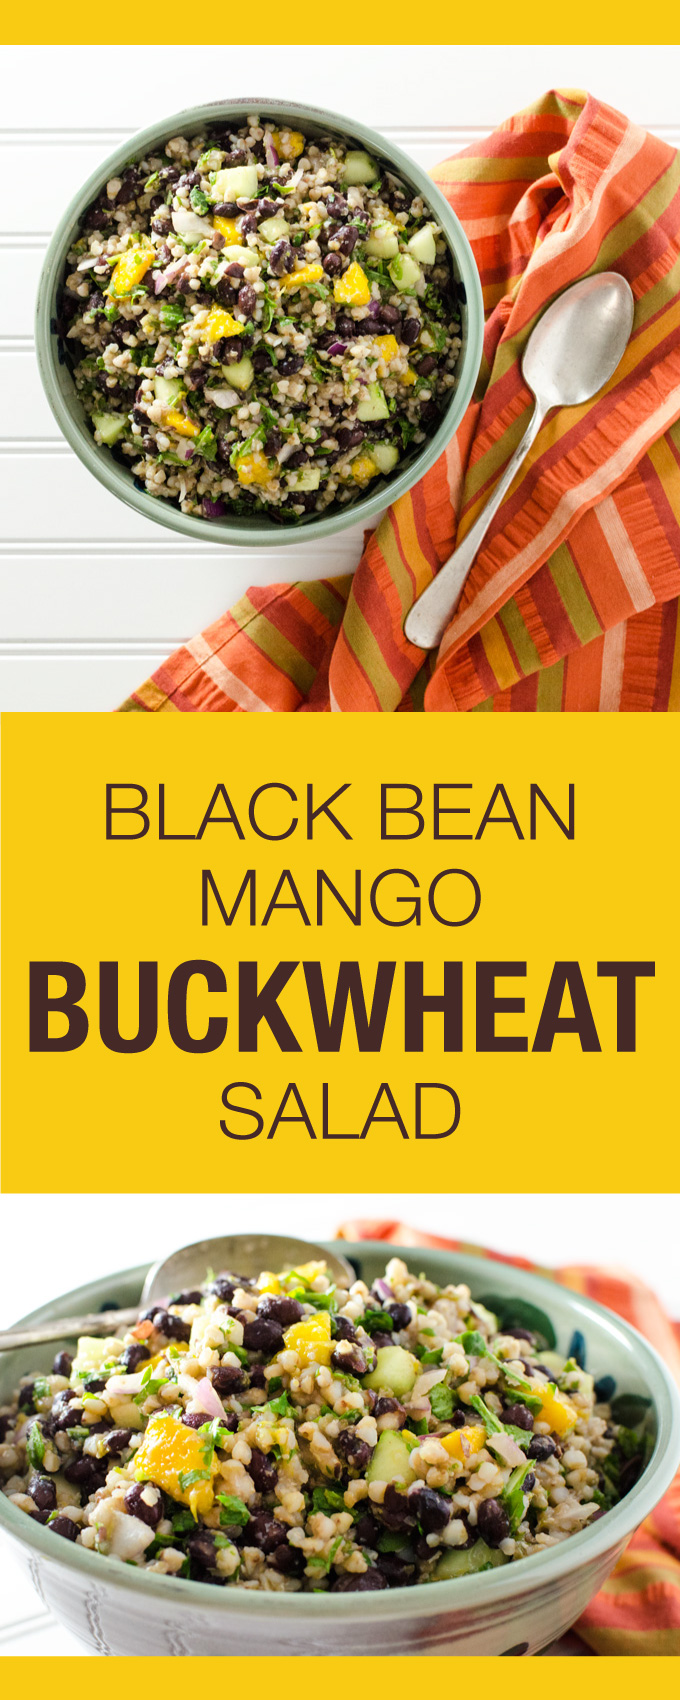 Black Bean Mango Buckwheat Salad This Vegan Gluten Free Recipe Makes A Great Lunch